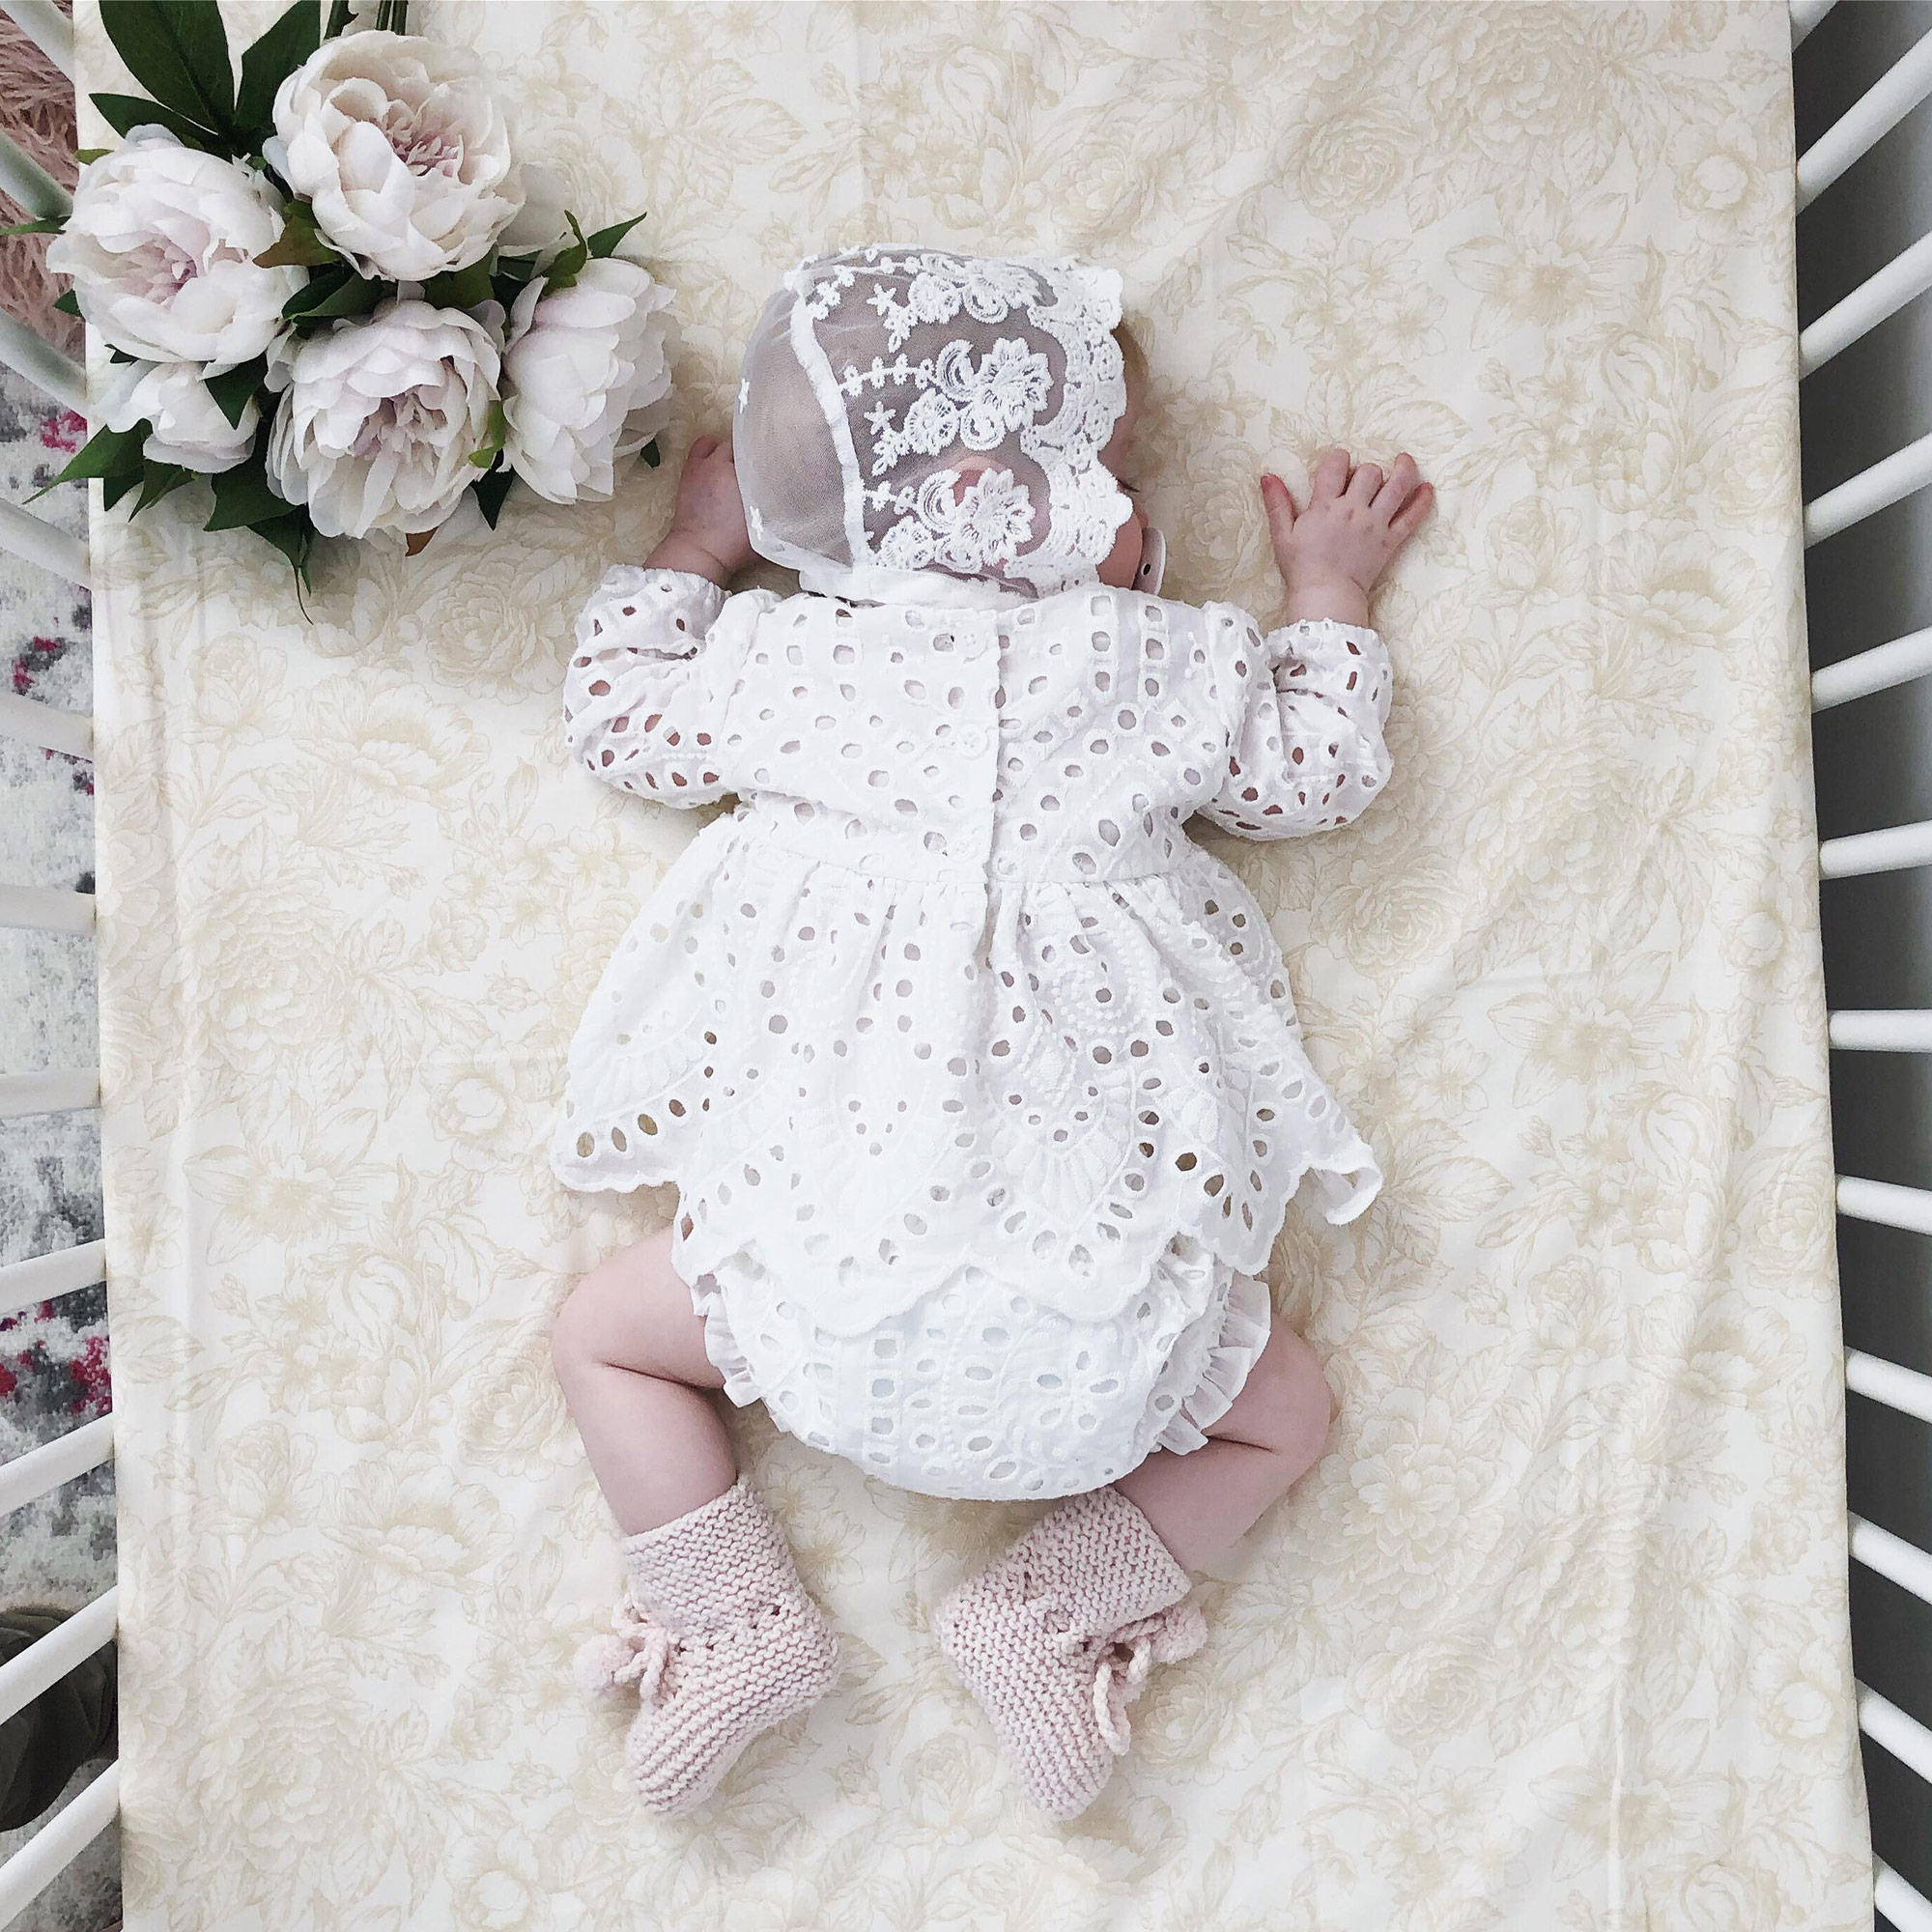 Odette wearing the White Ivy Broderie Anglaise 2 Piece Set